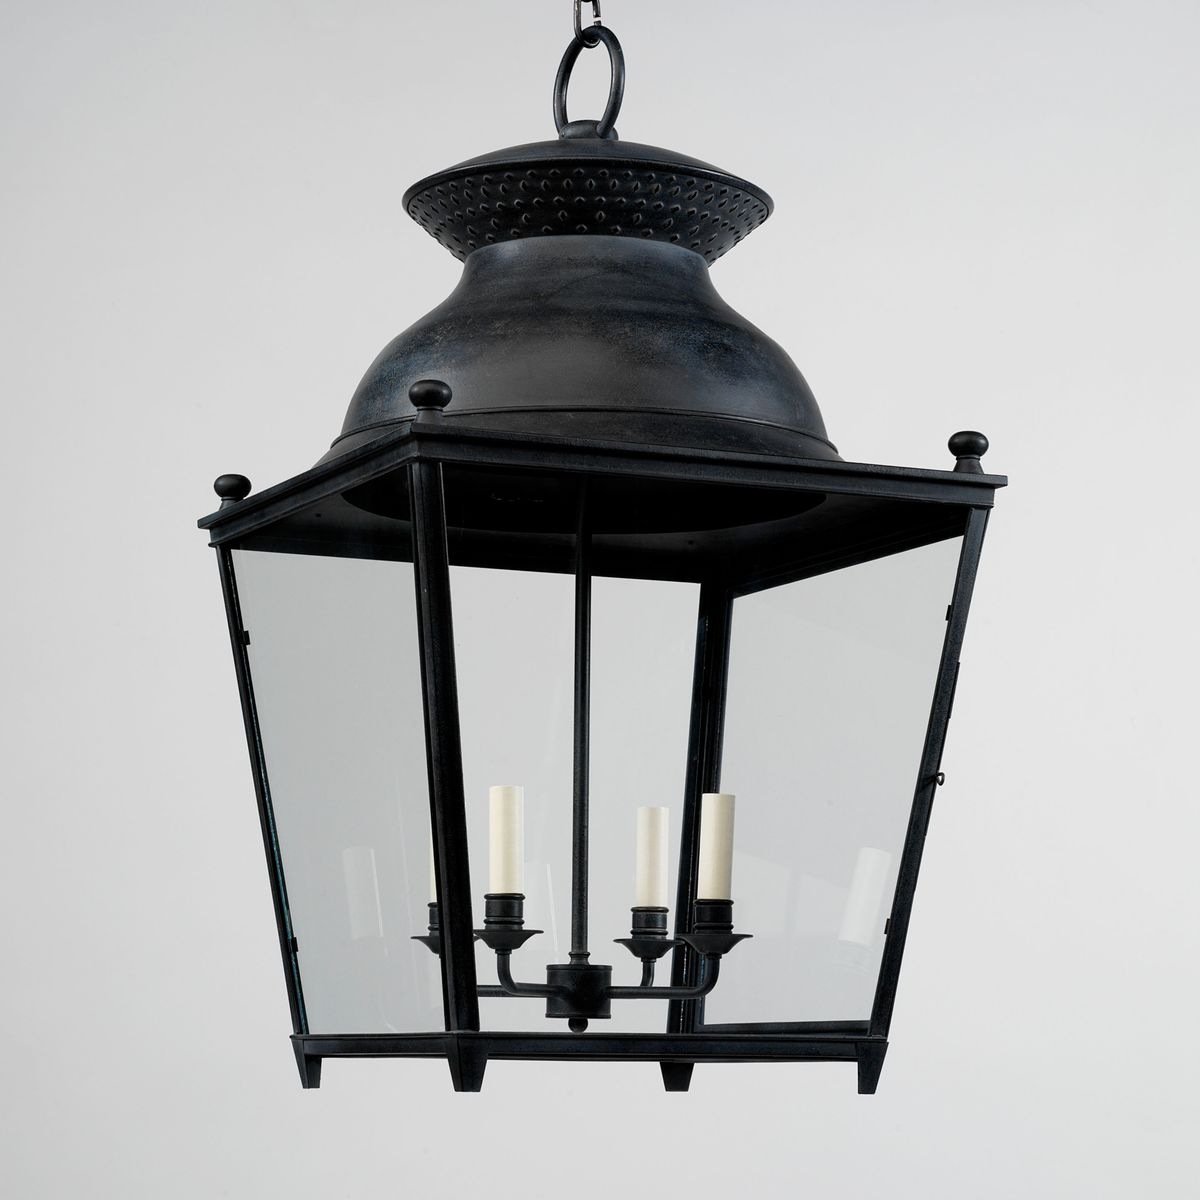 French Chateau Lantern - Vaughan Designs